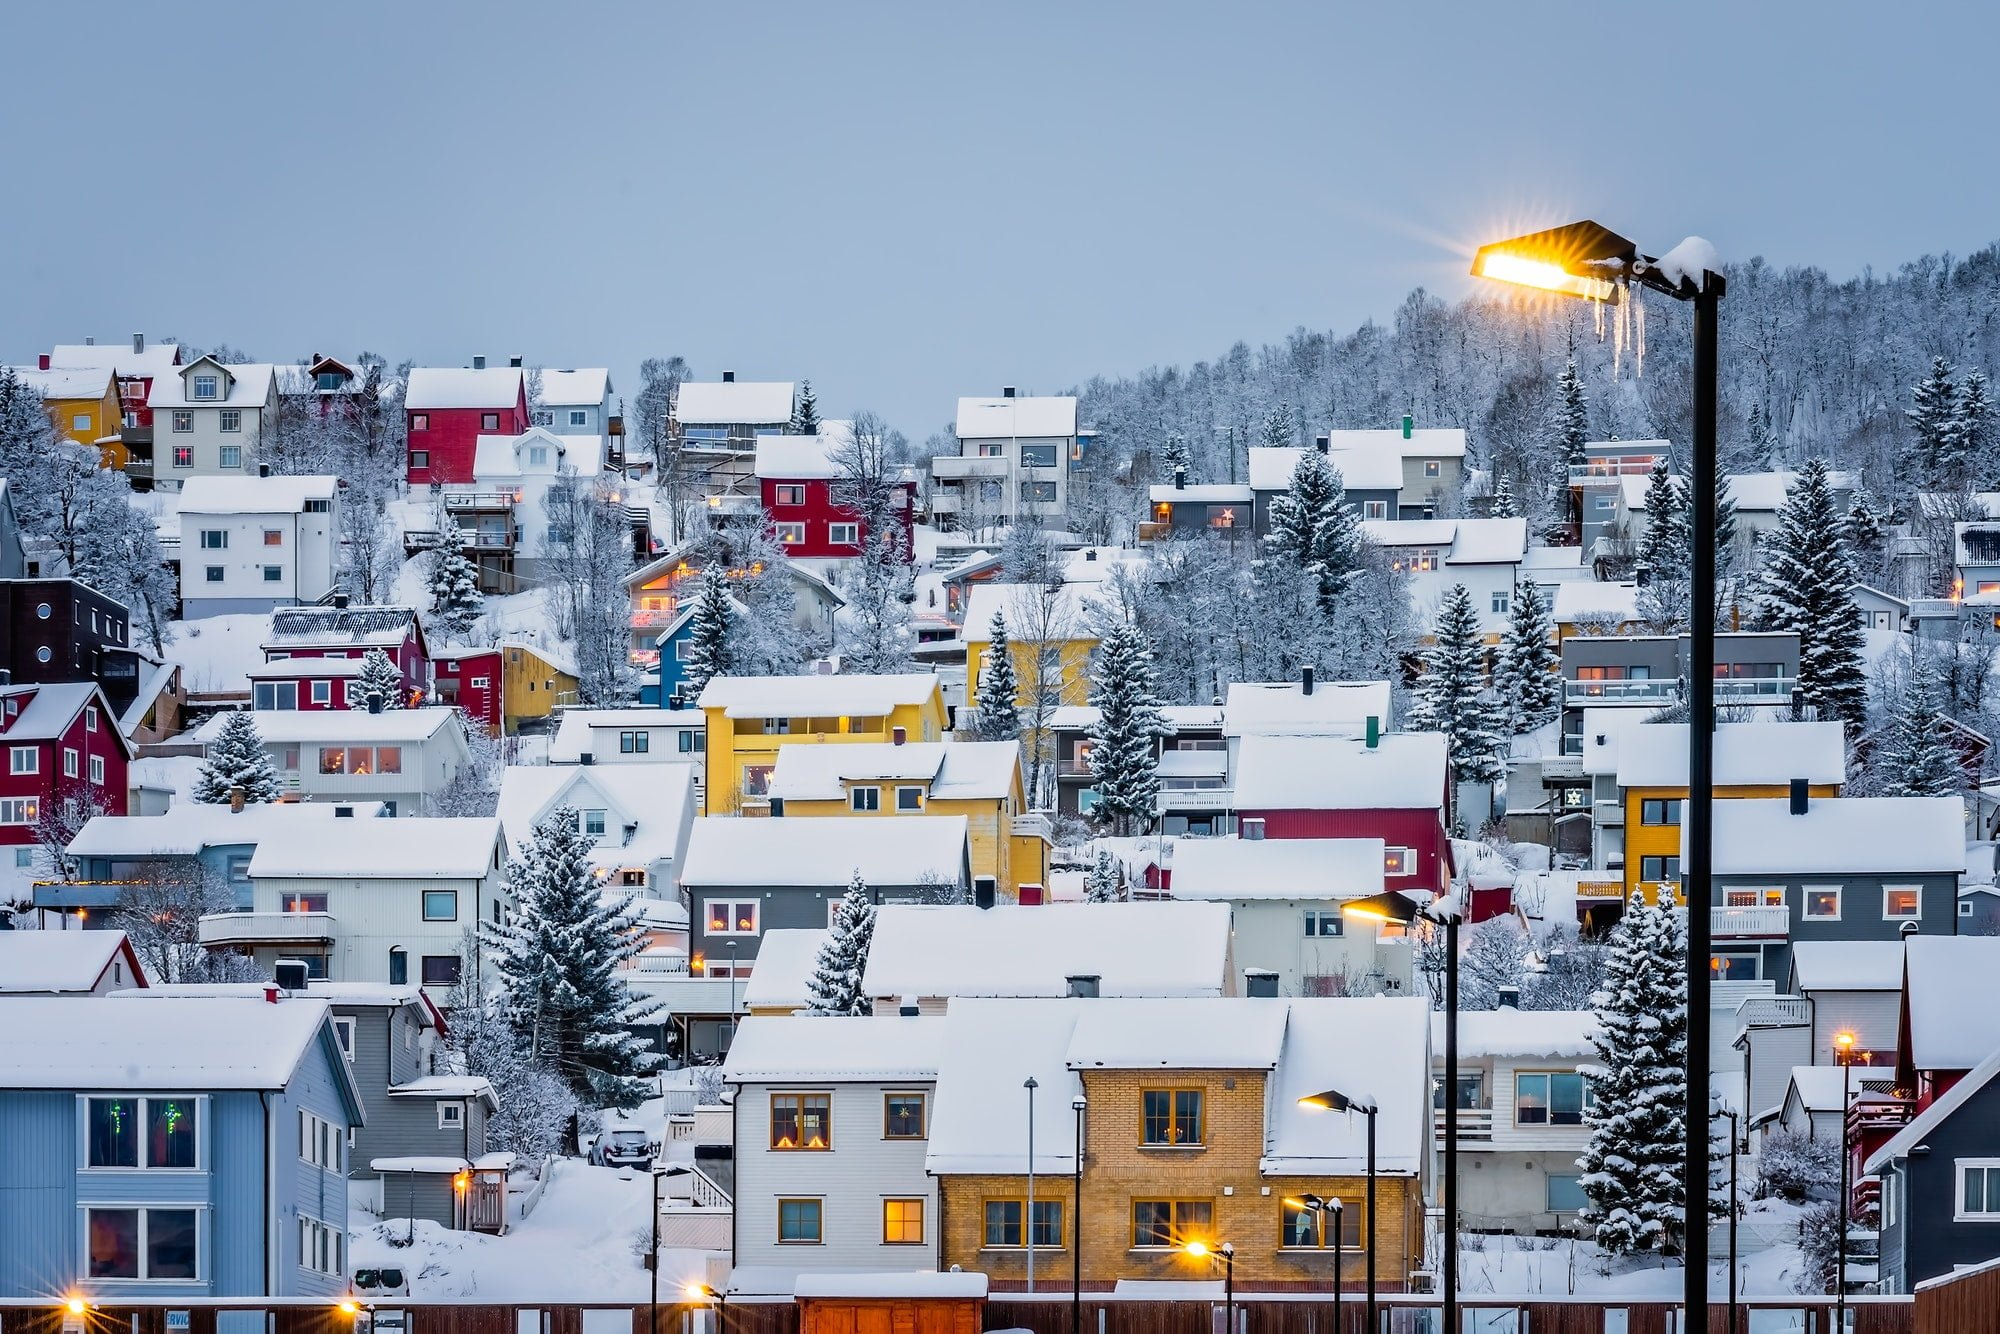 Hillside houses in Tromso in winter